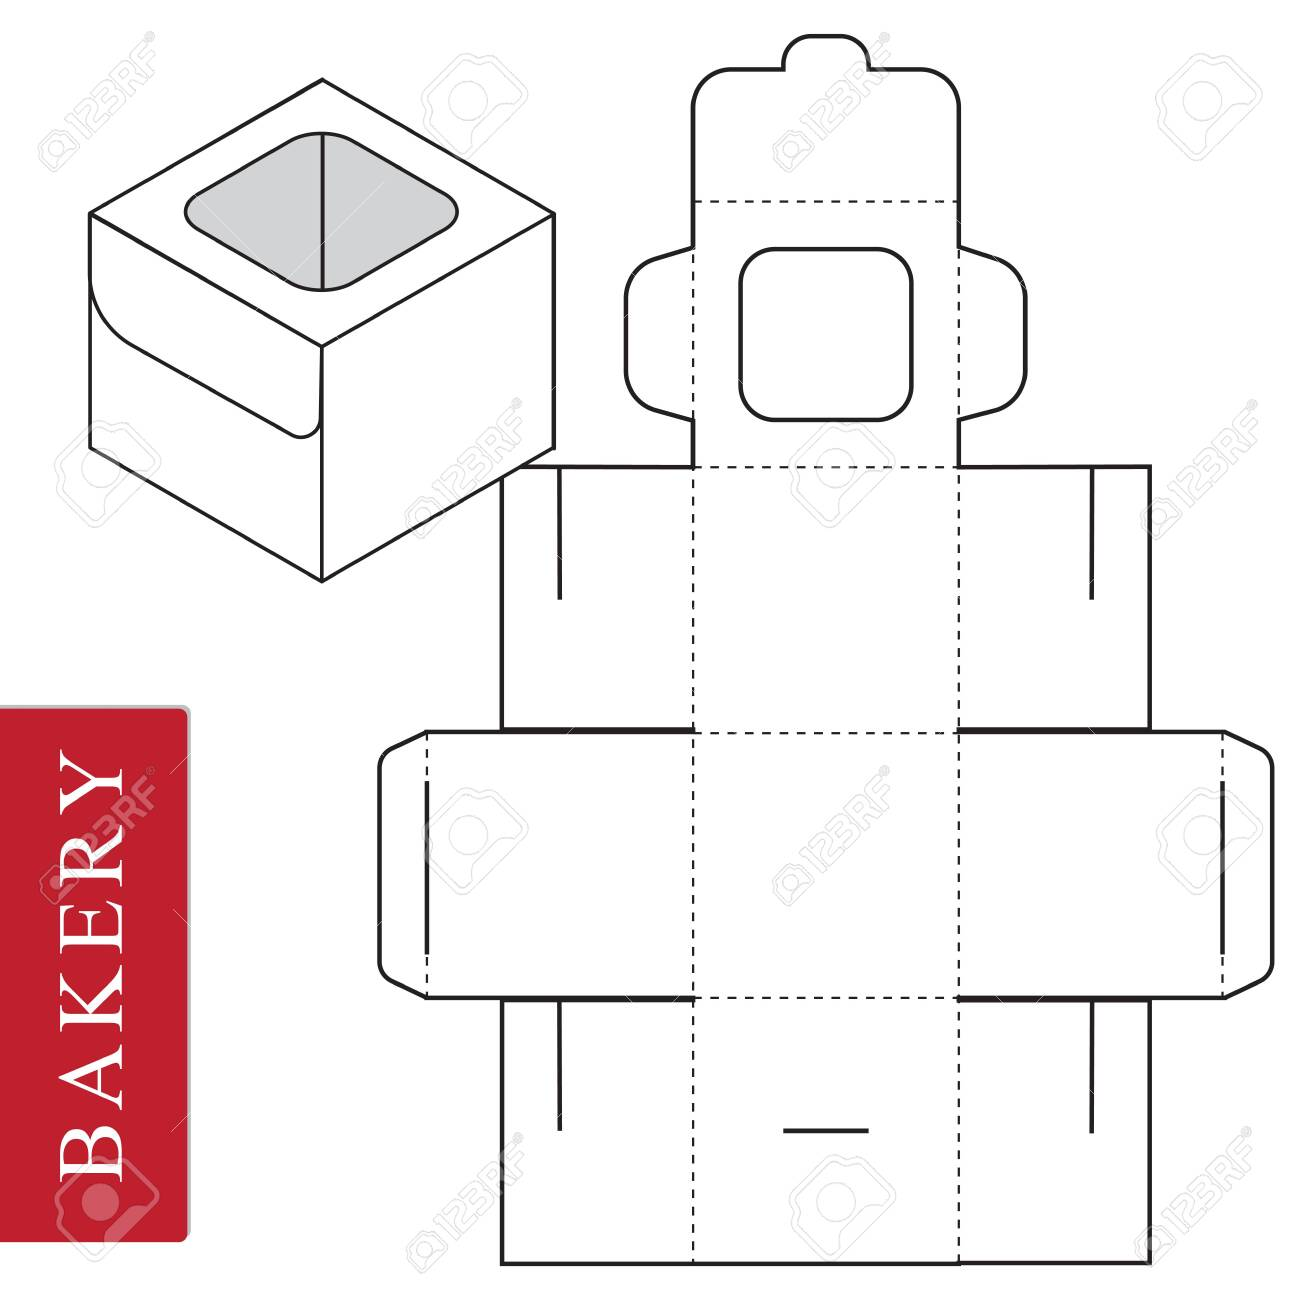 Package template for bakery food or Other items. - 122006689